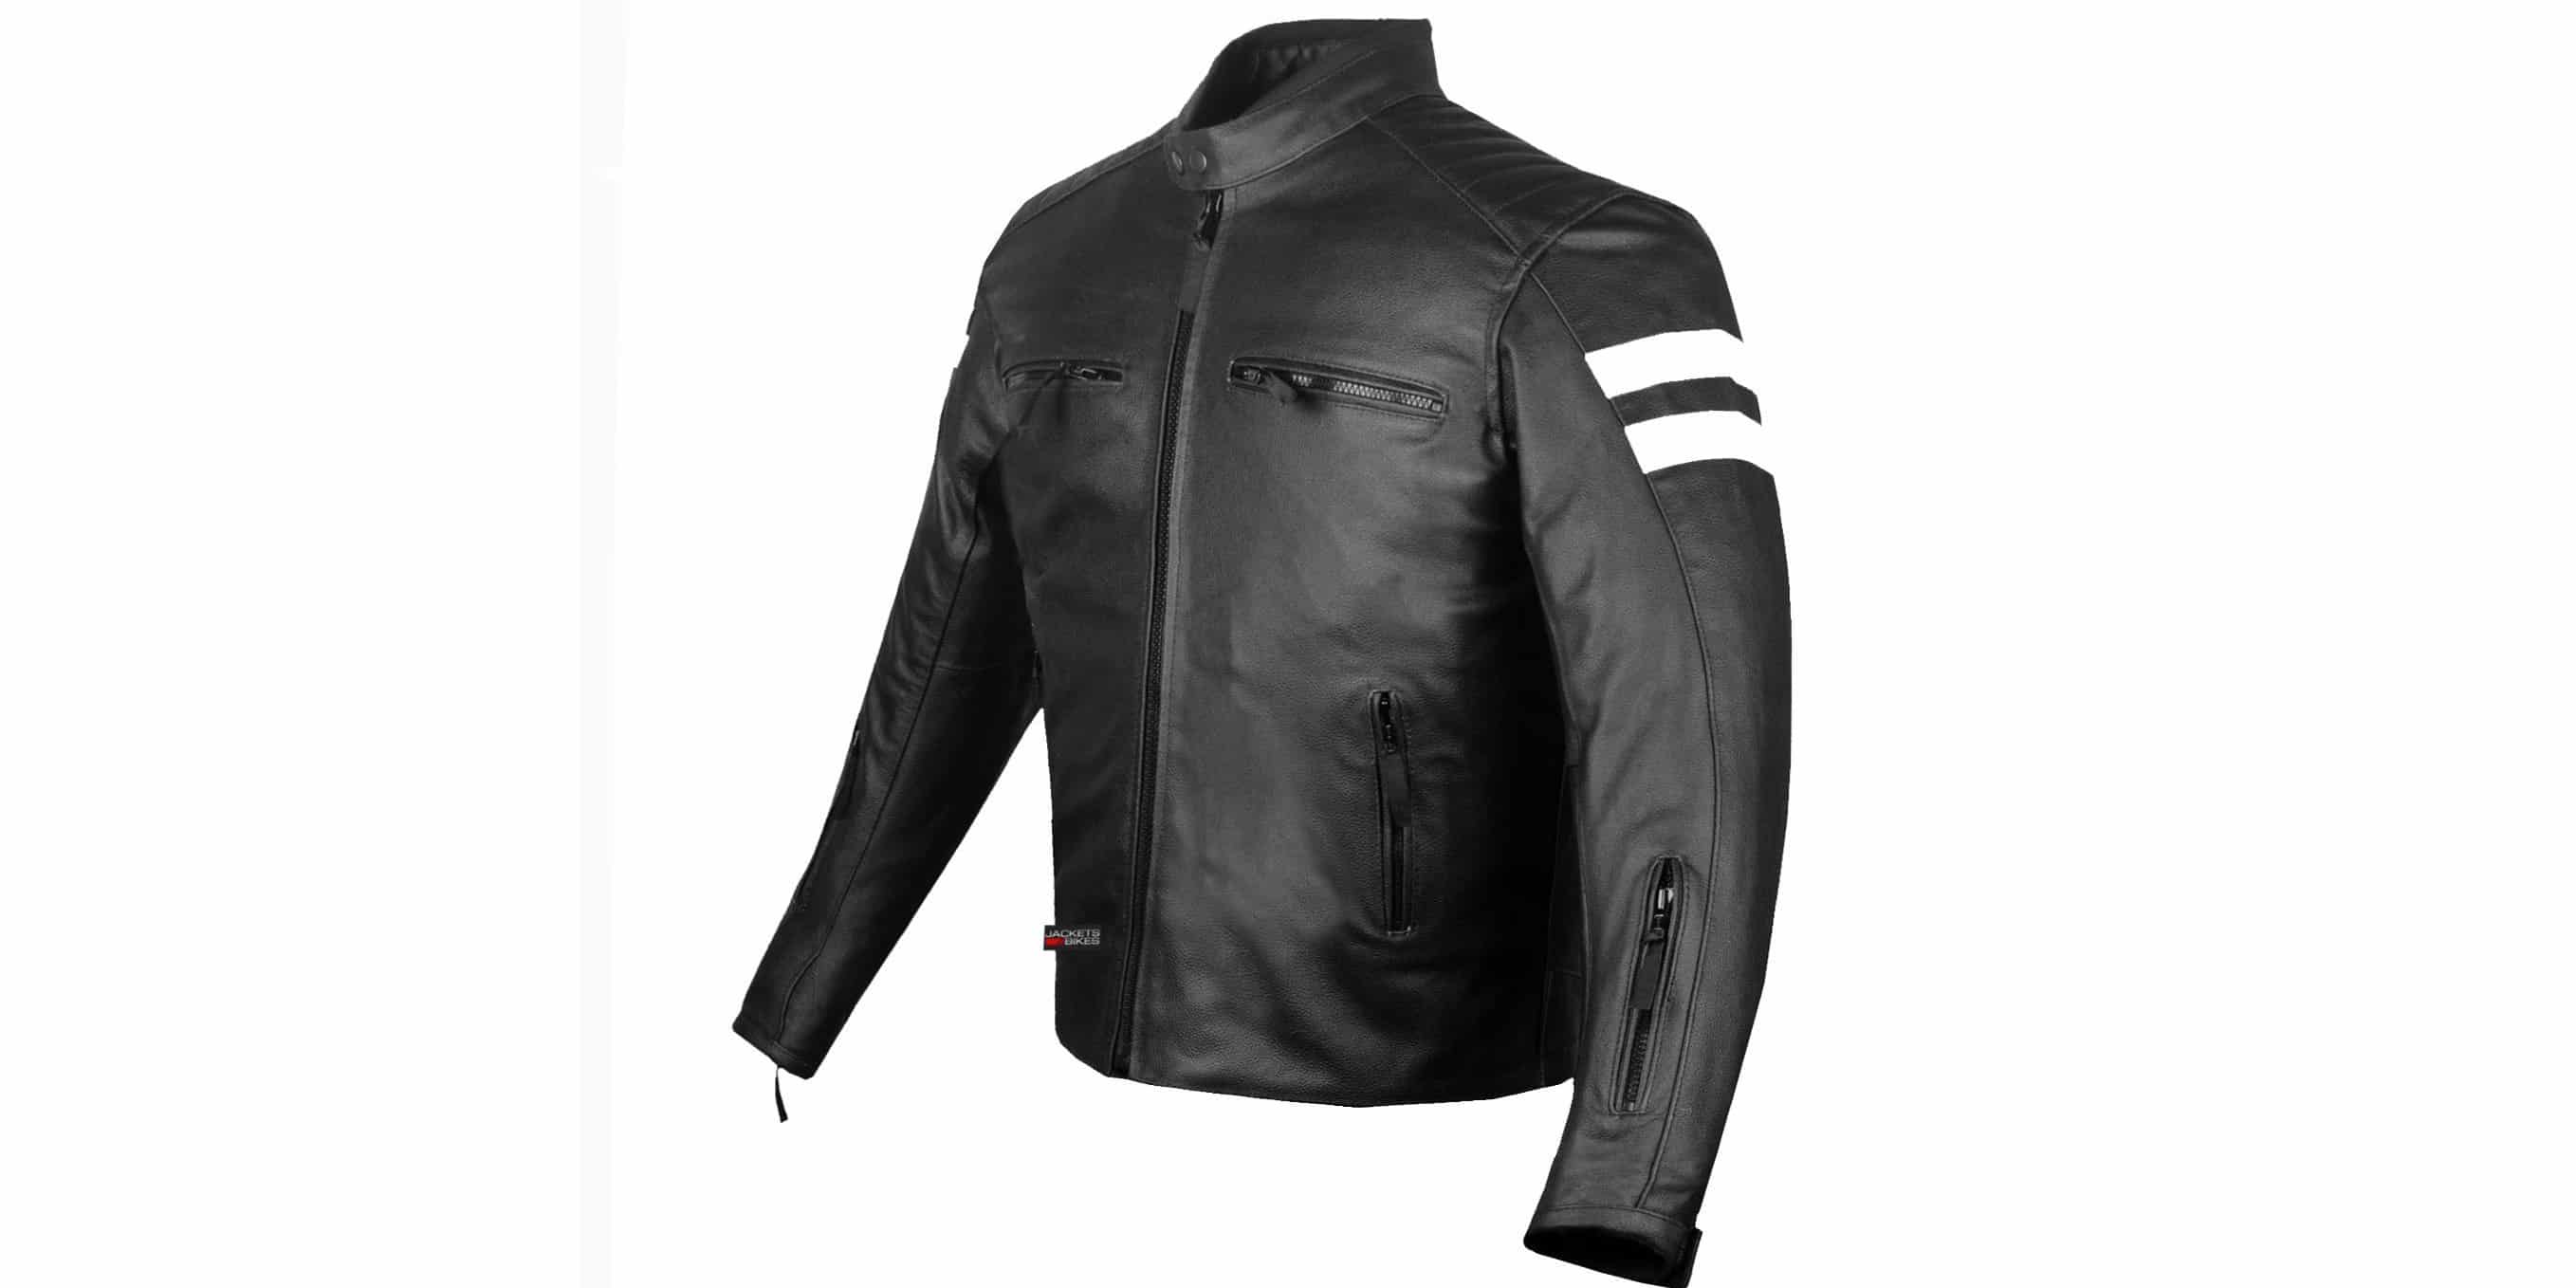 8a17db559 Top 10 Best Men's Leather Motorcycle Jackets in 2019 - Review ...